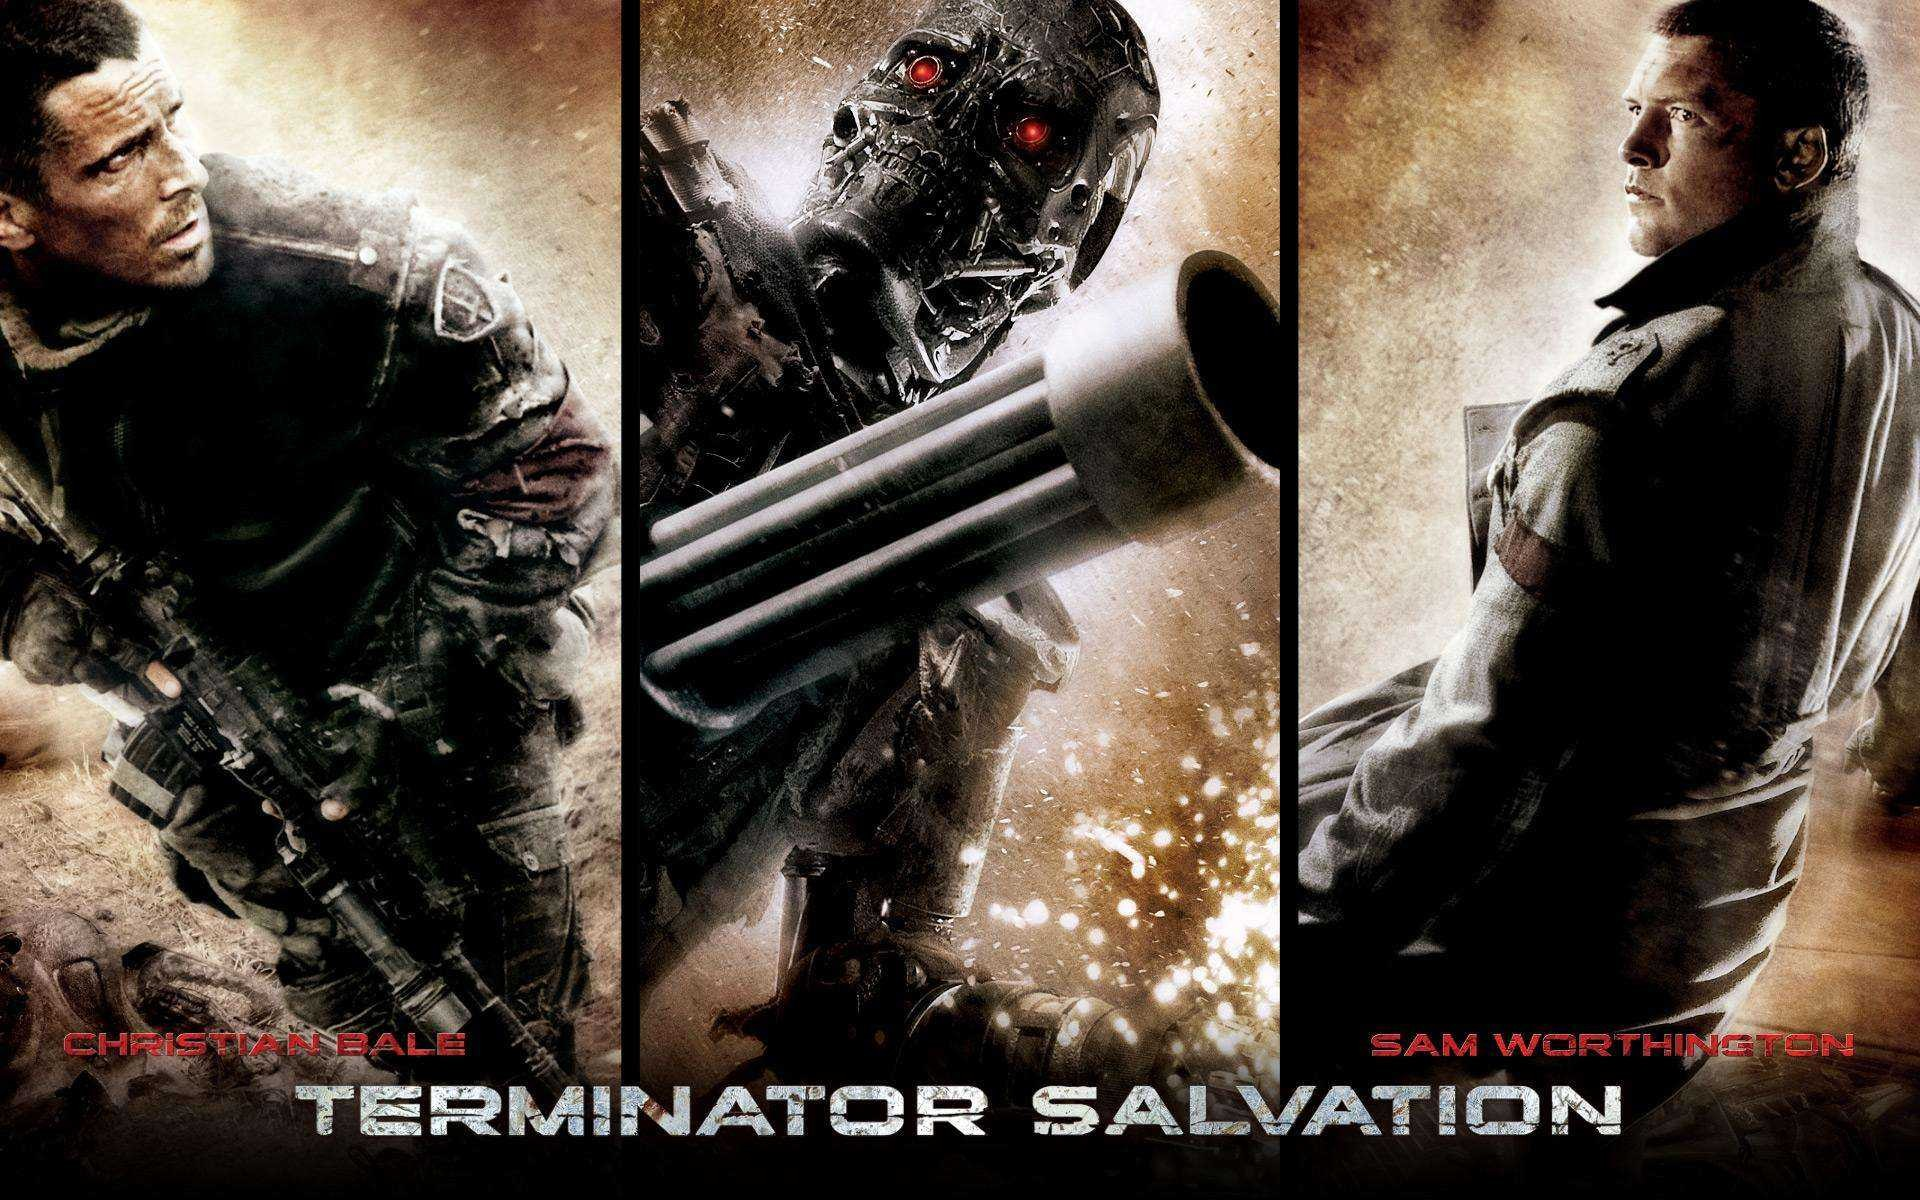 Un wallpaper del film Terminator Salvation